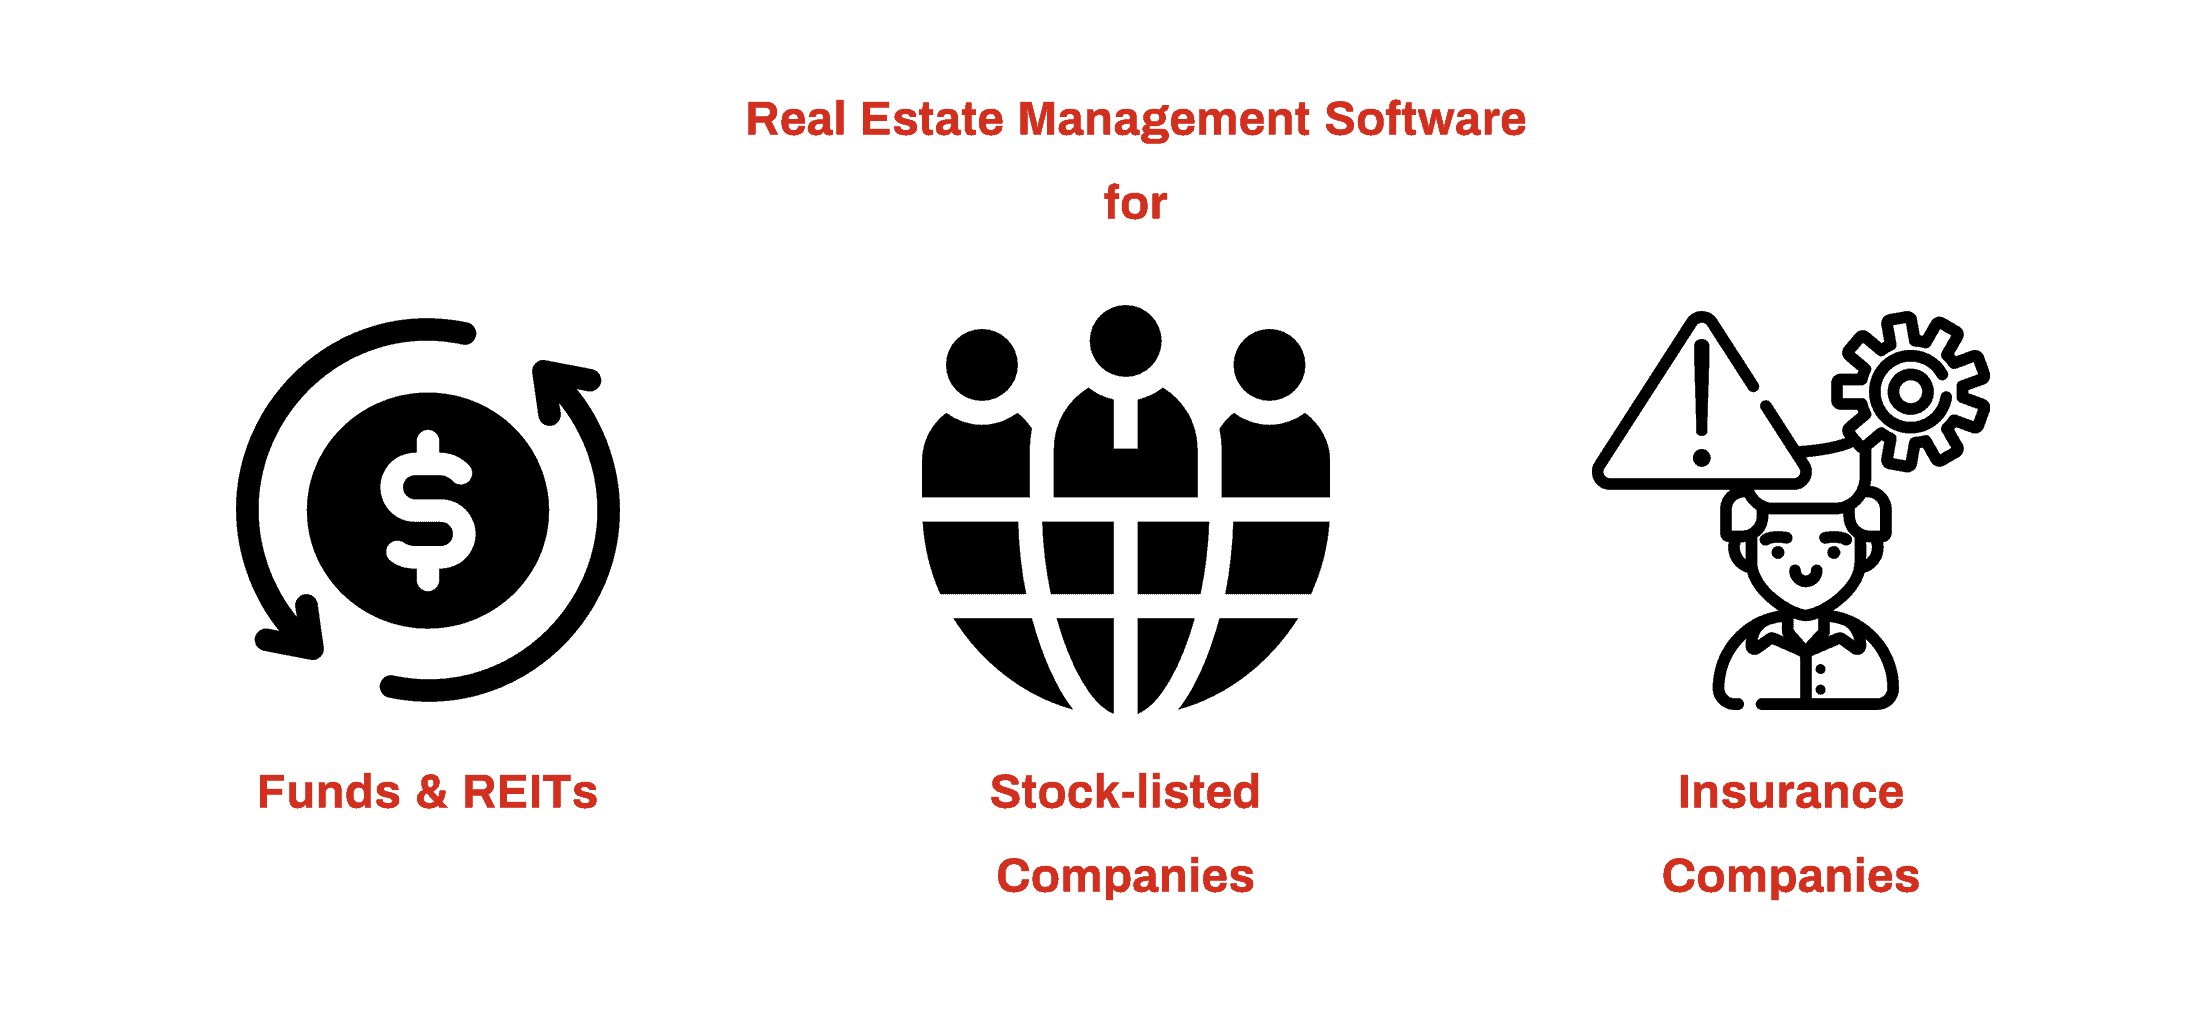 real estate management software for funds, reits, stock-listed companies and insurance companies